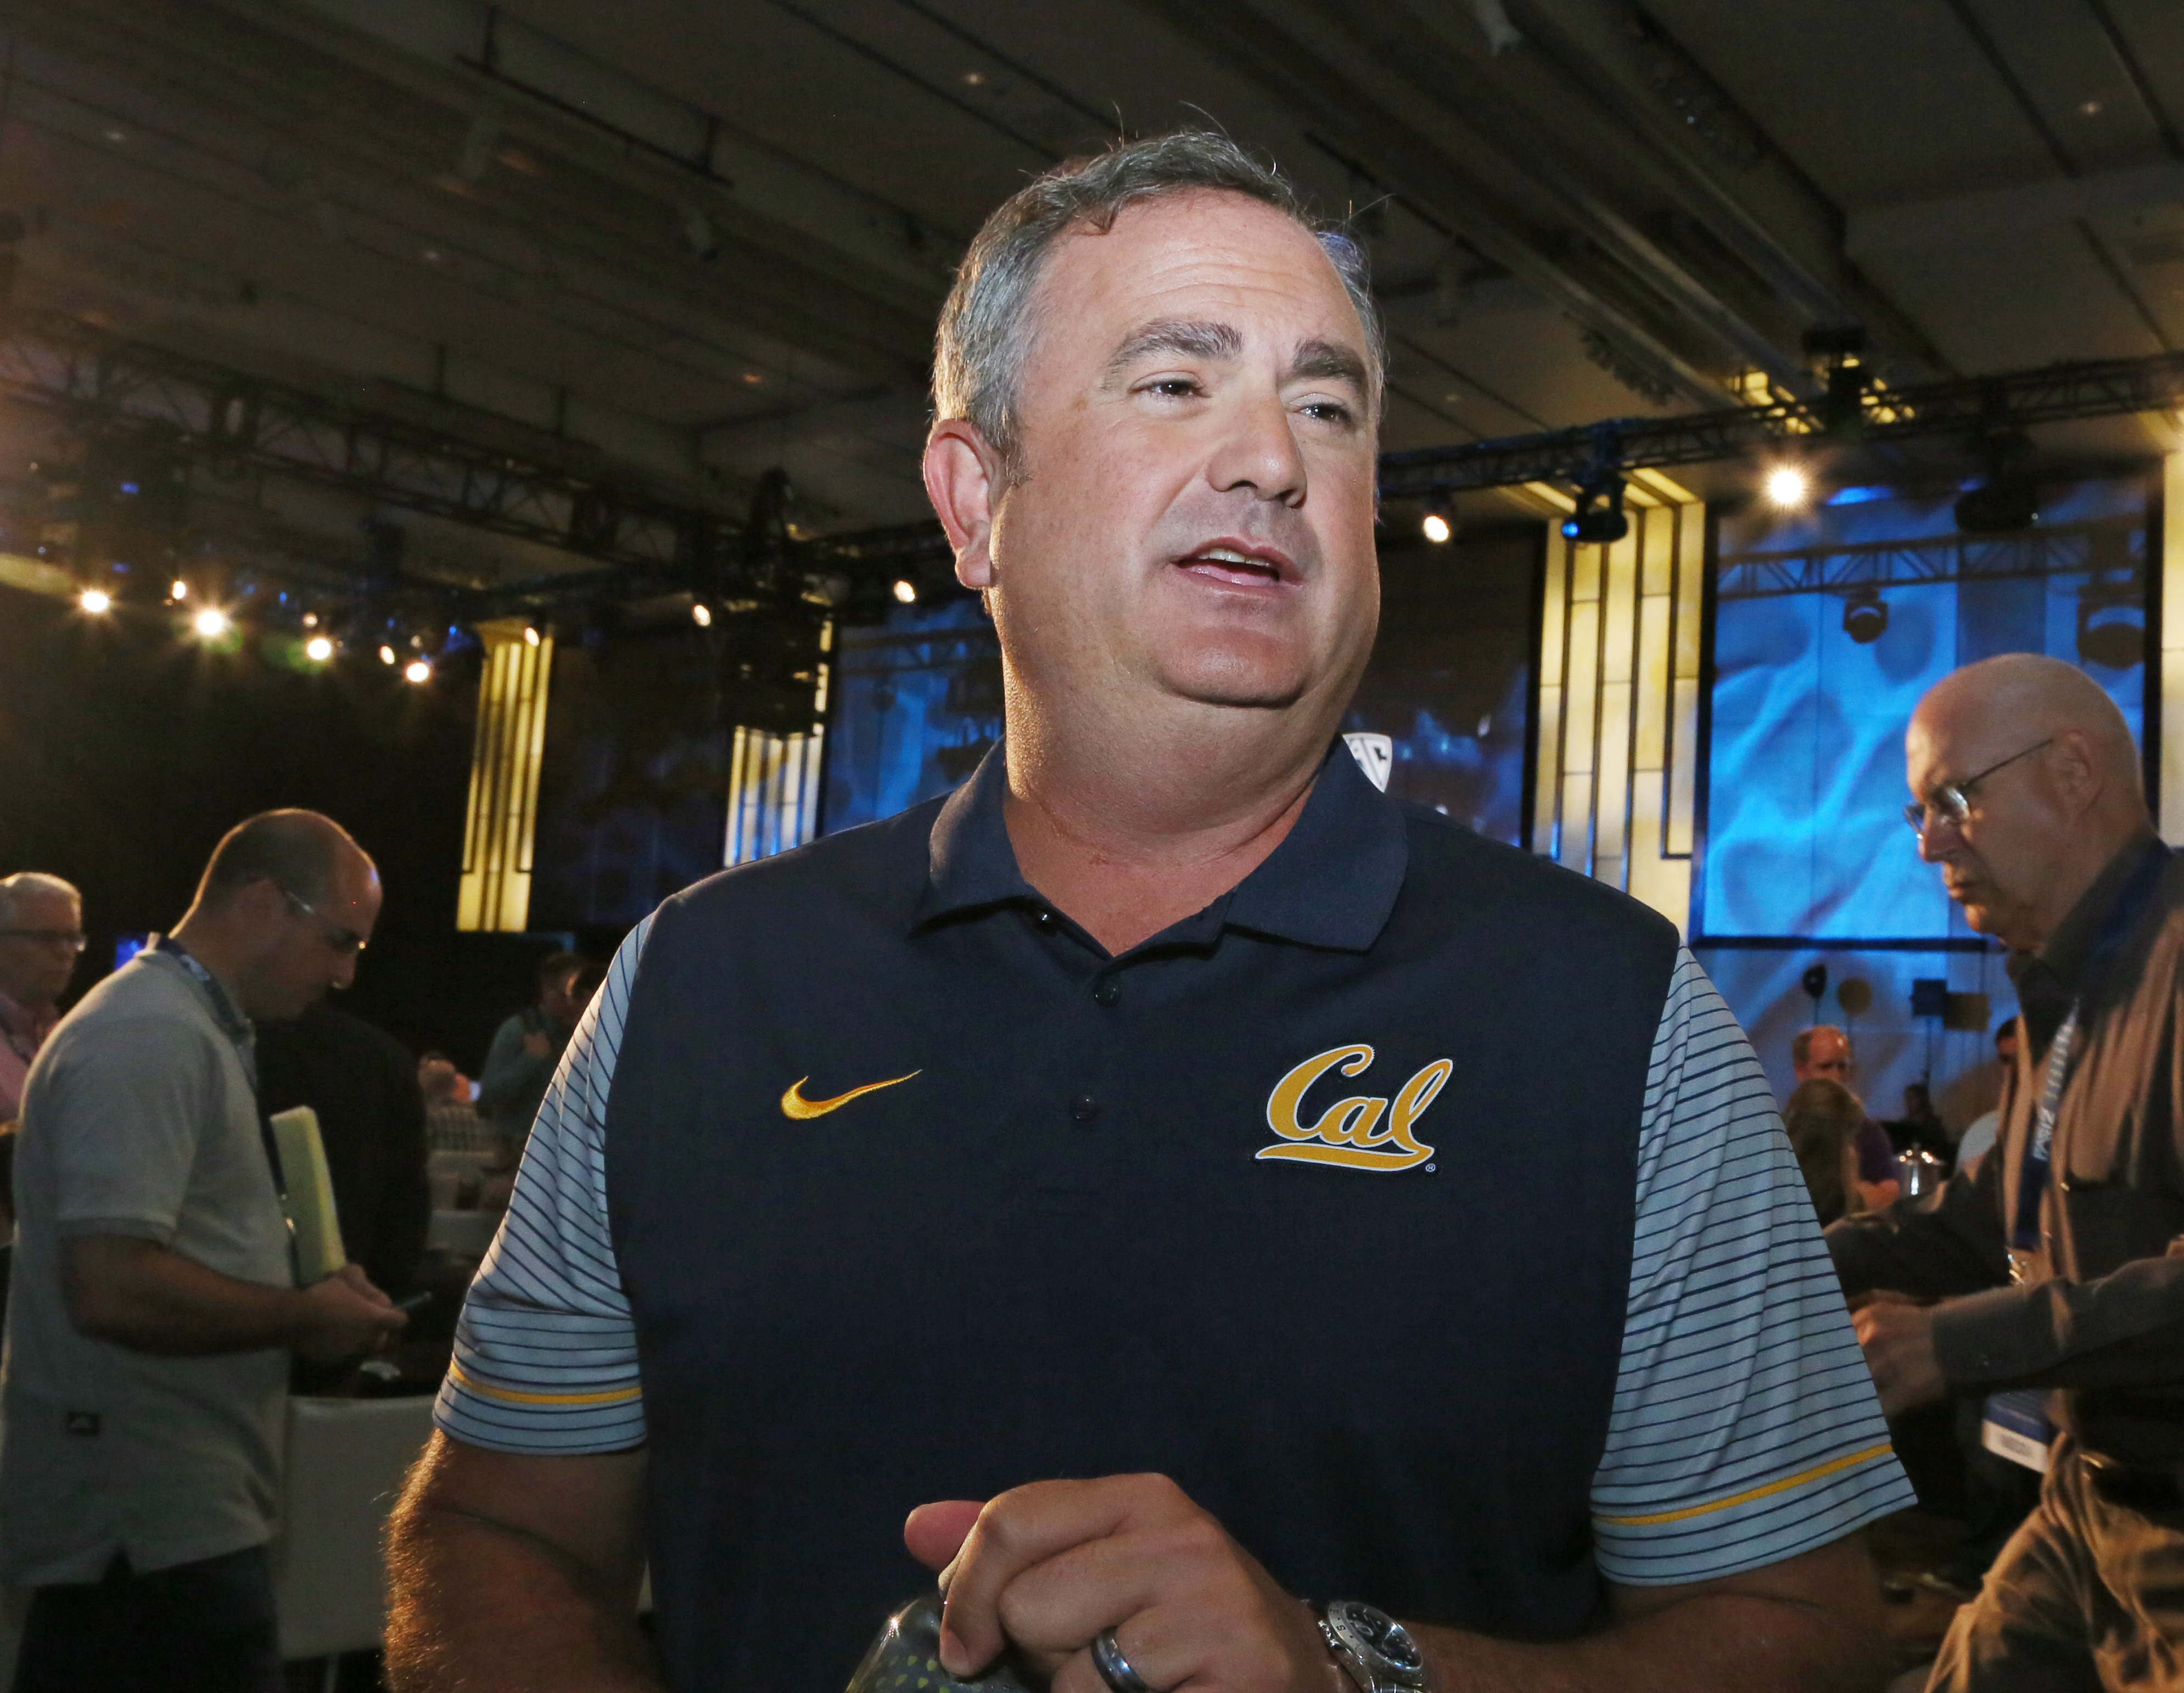 California head coach Sonny Dykes talks to reporters at the Pac-12 NCAA college football media day in Los Angeles Thursday, July 14, 2016. (AP Photo/Reed Saxon)